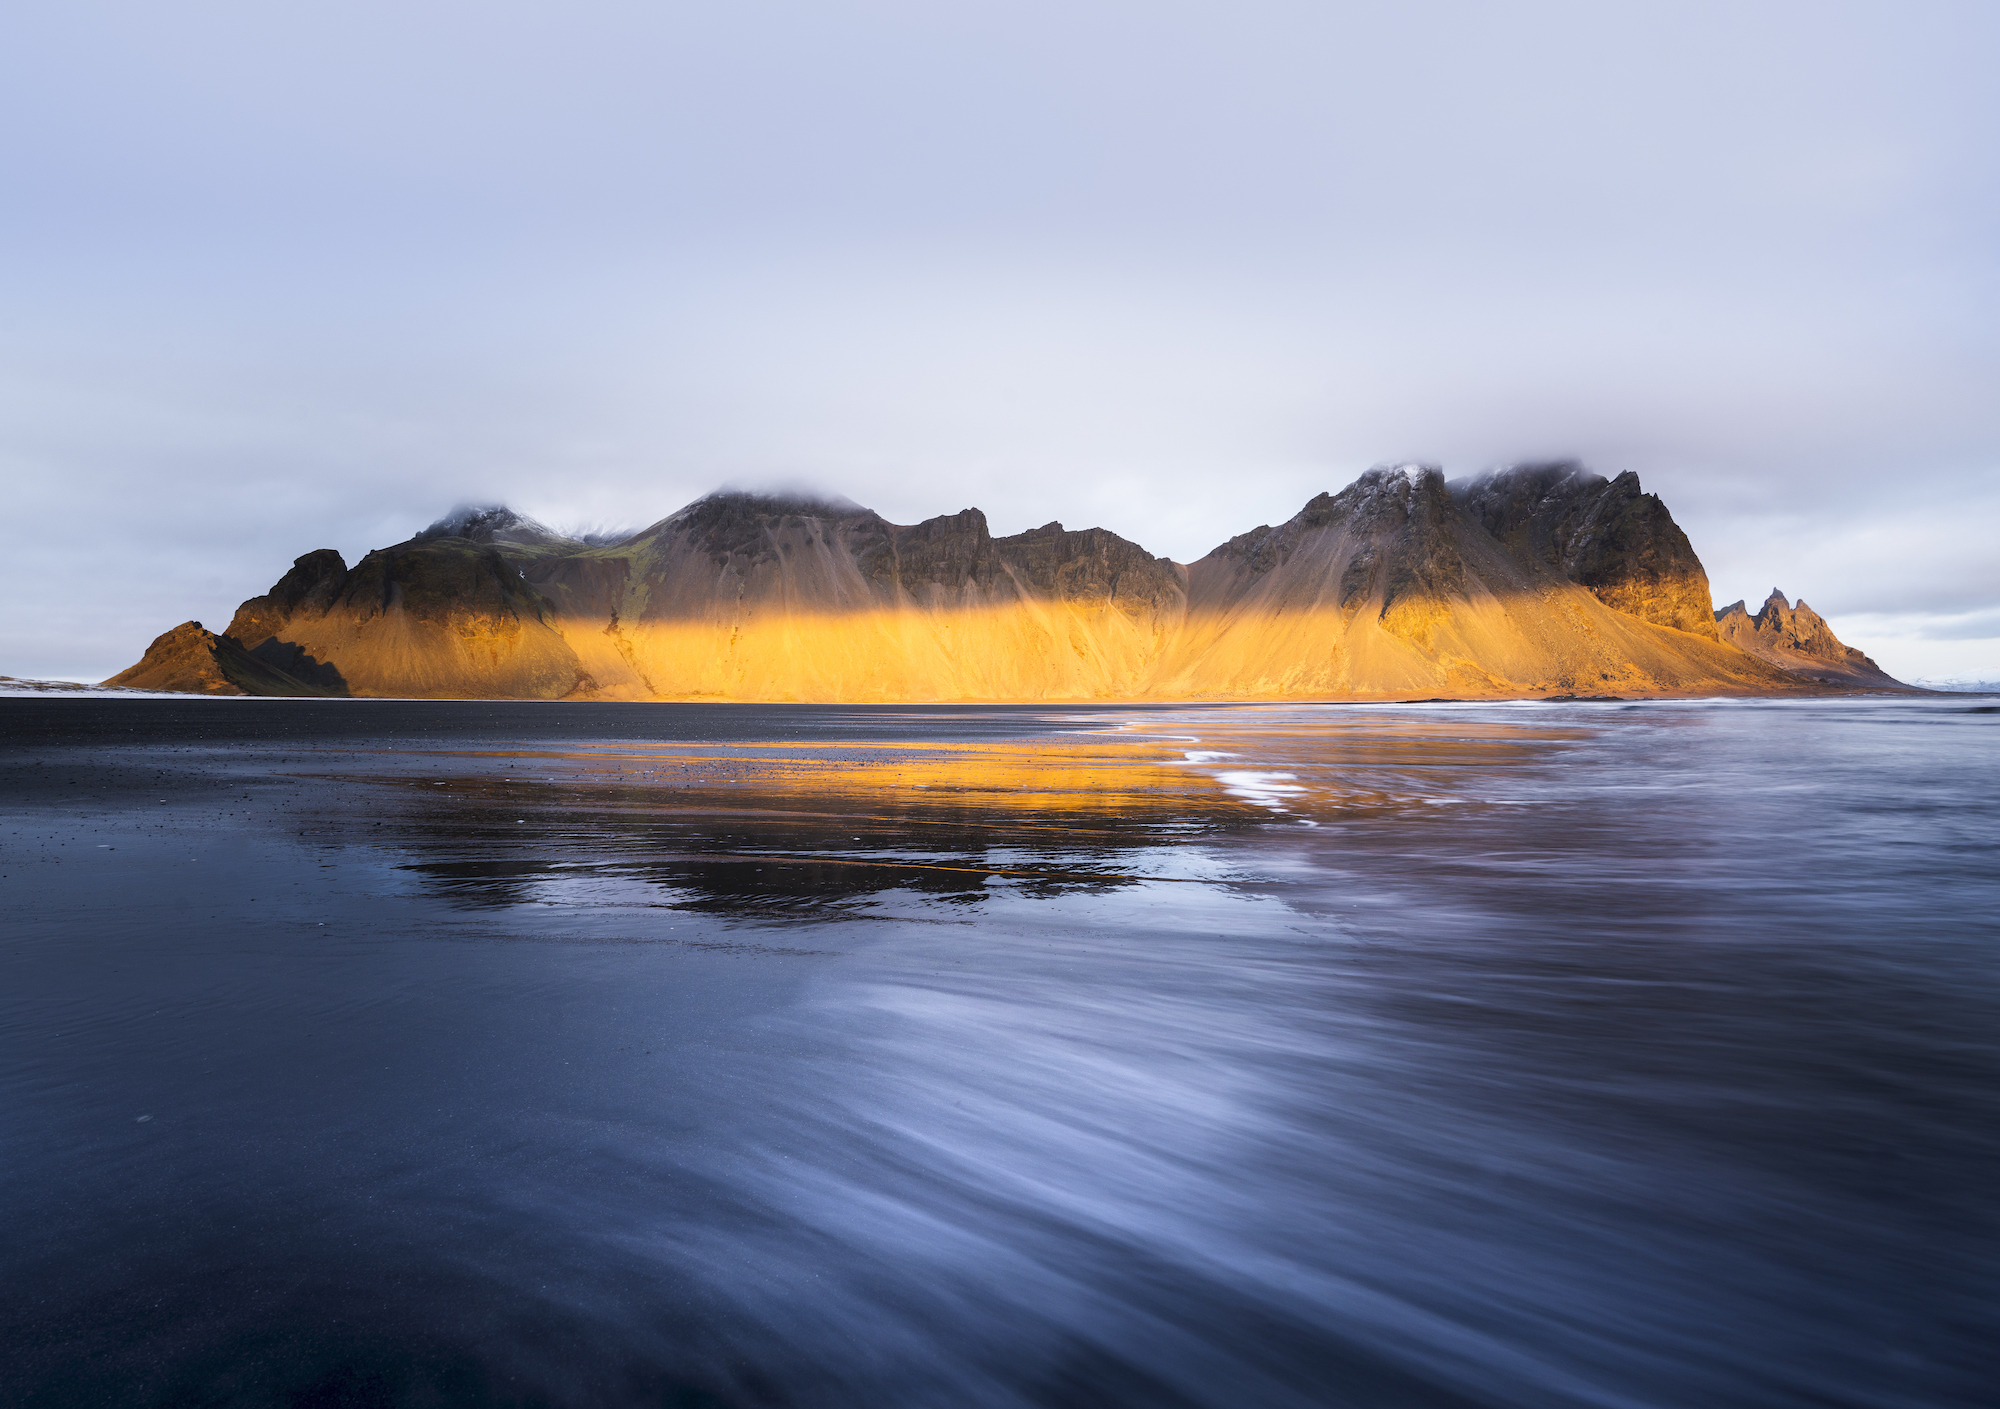 A dramatic shot of the gorgeous Stokksnes in amazing winter light